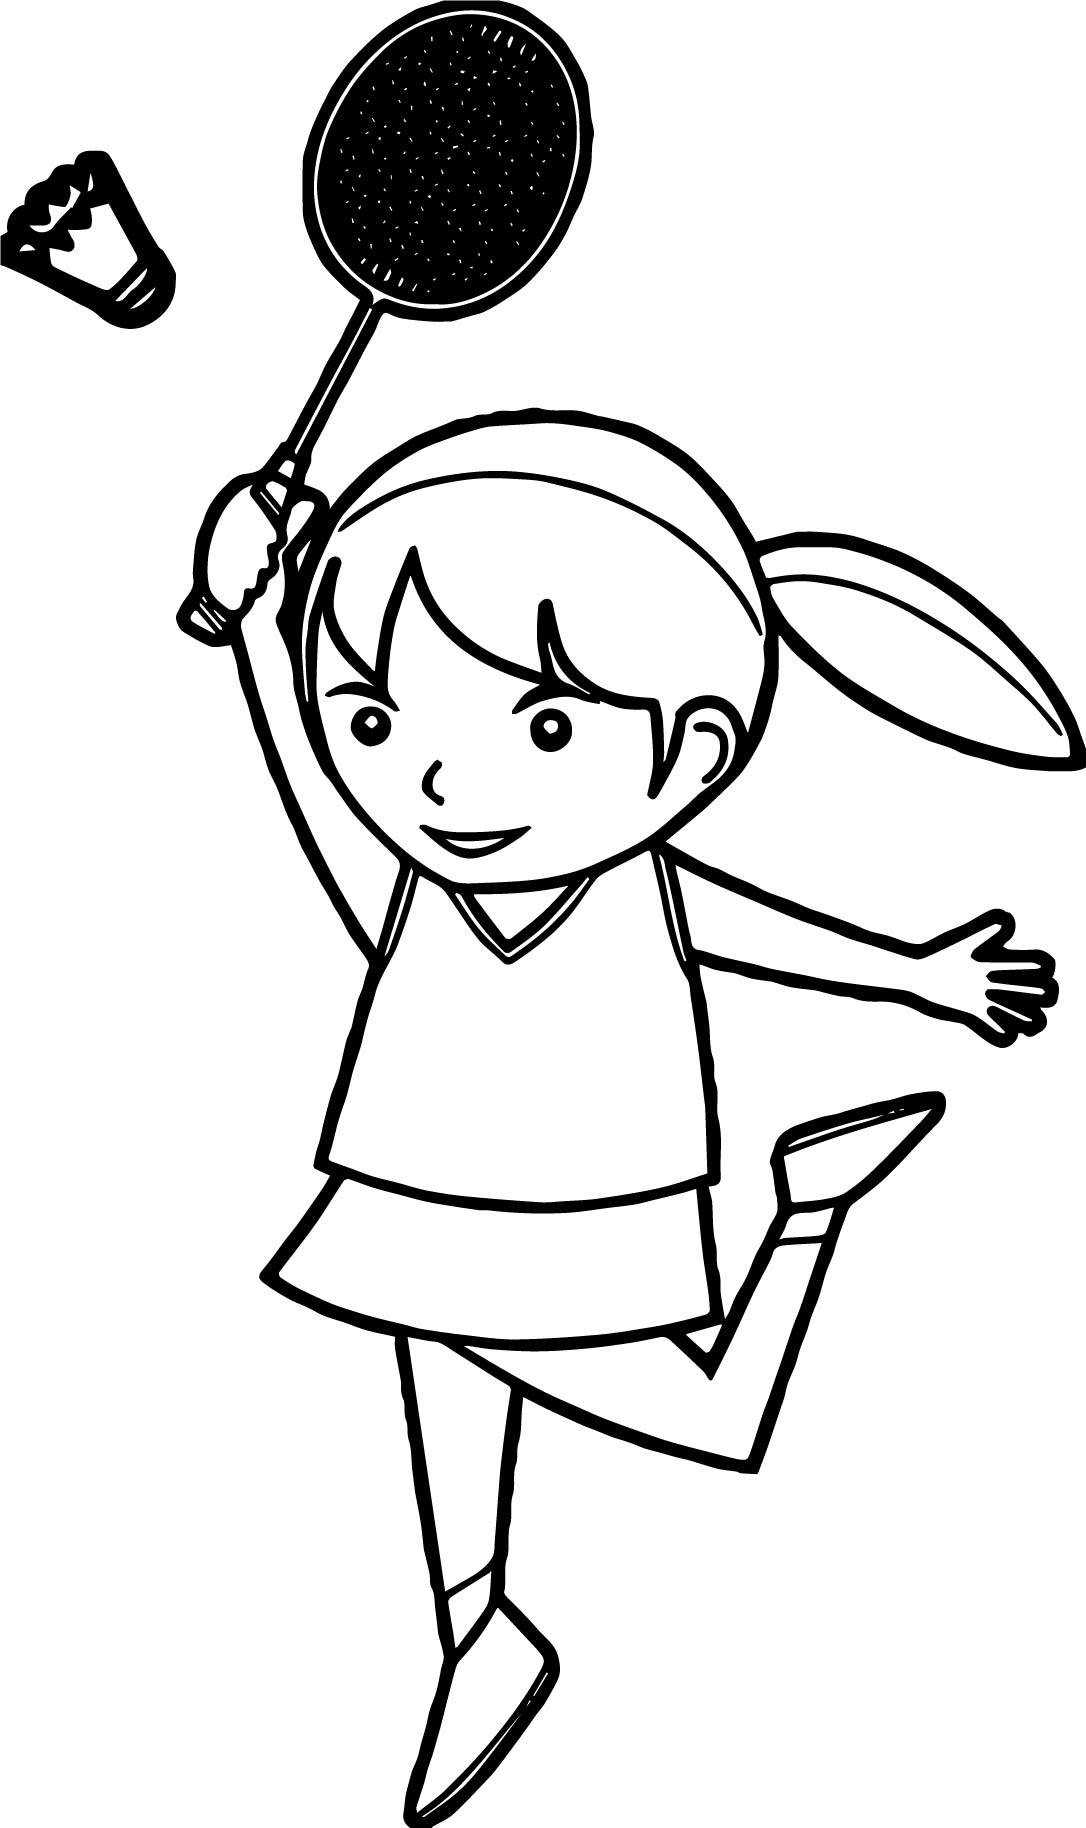 Girl Badminton Tennis Coloring Page